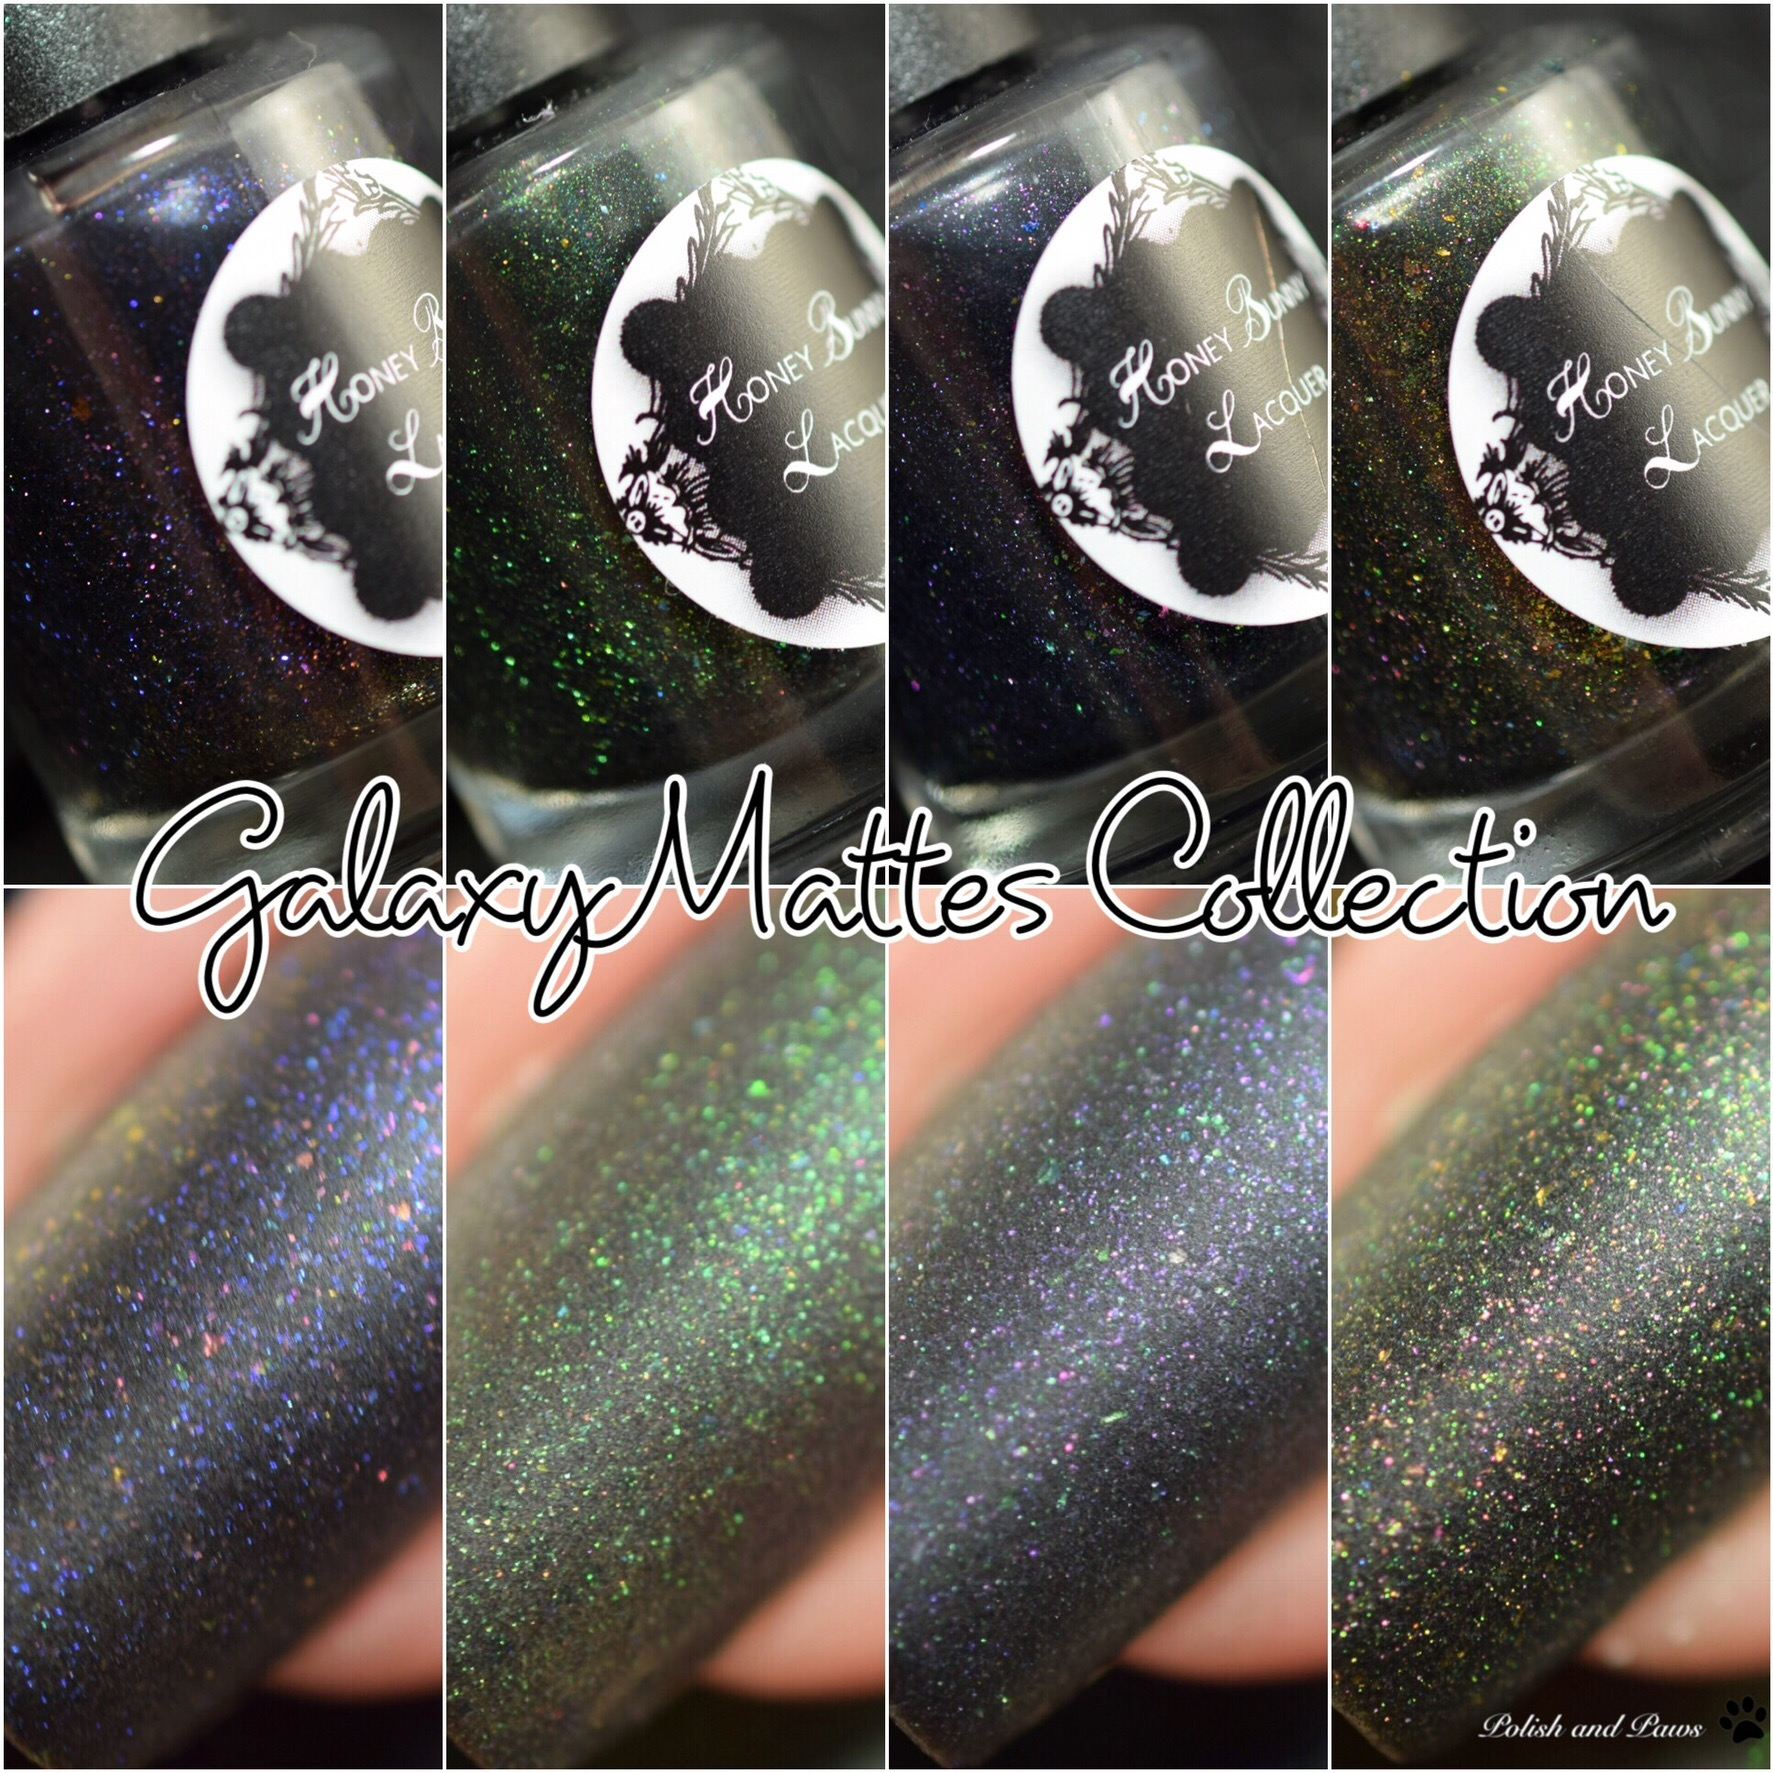 Honey Bunny Lacquer Galaxy Mattes Collection